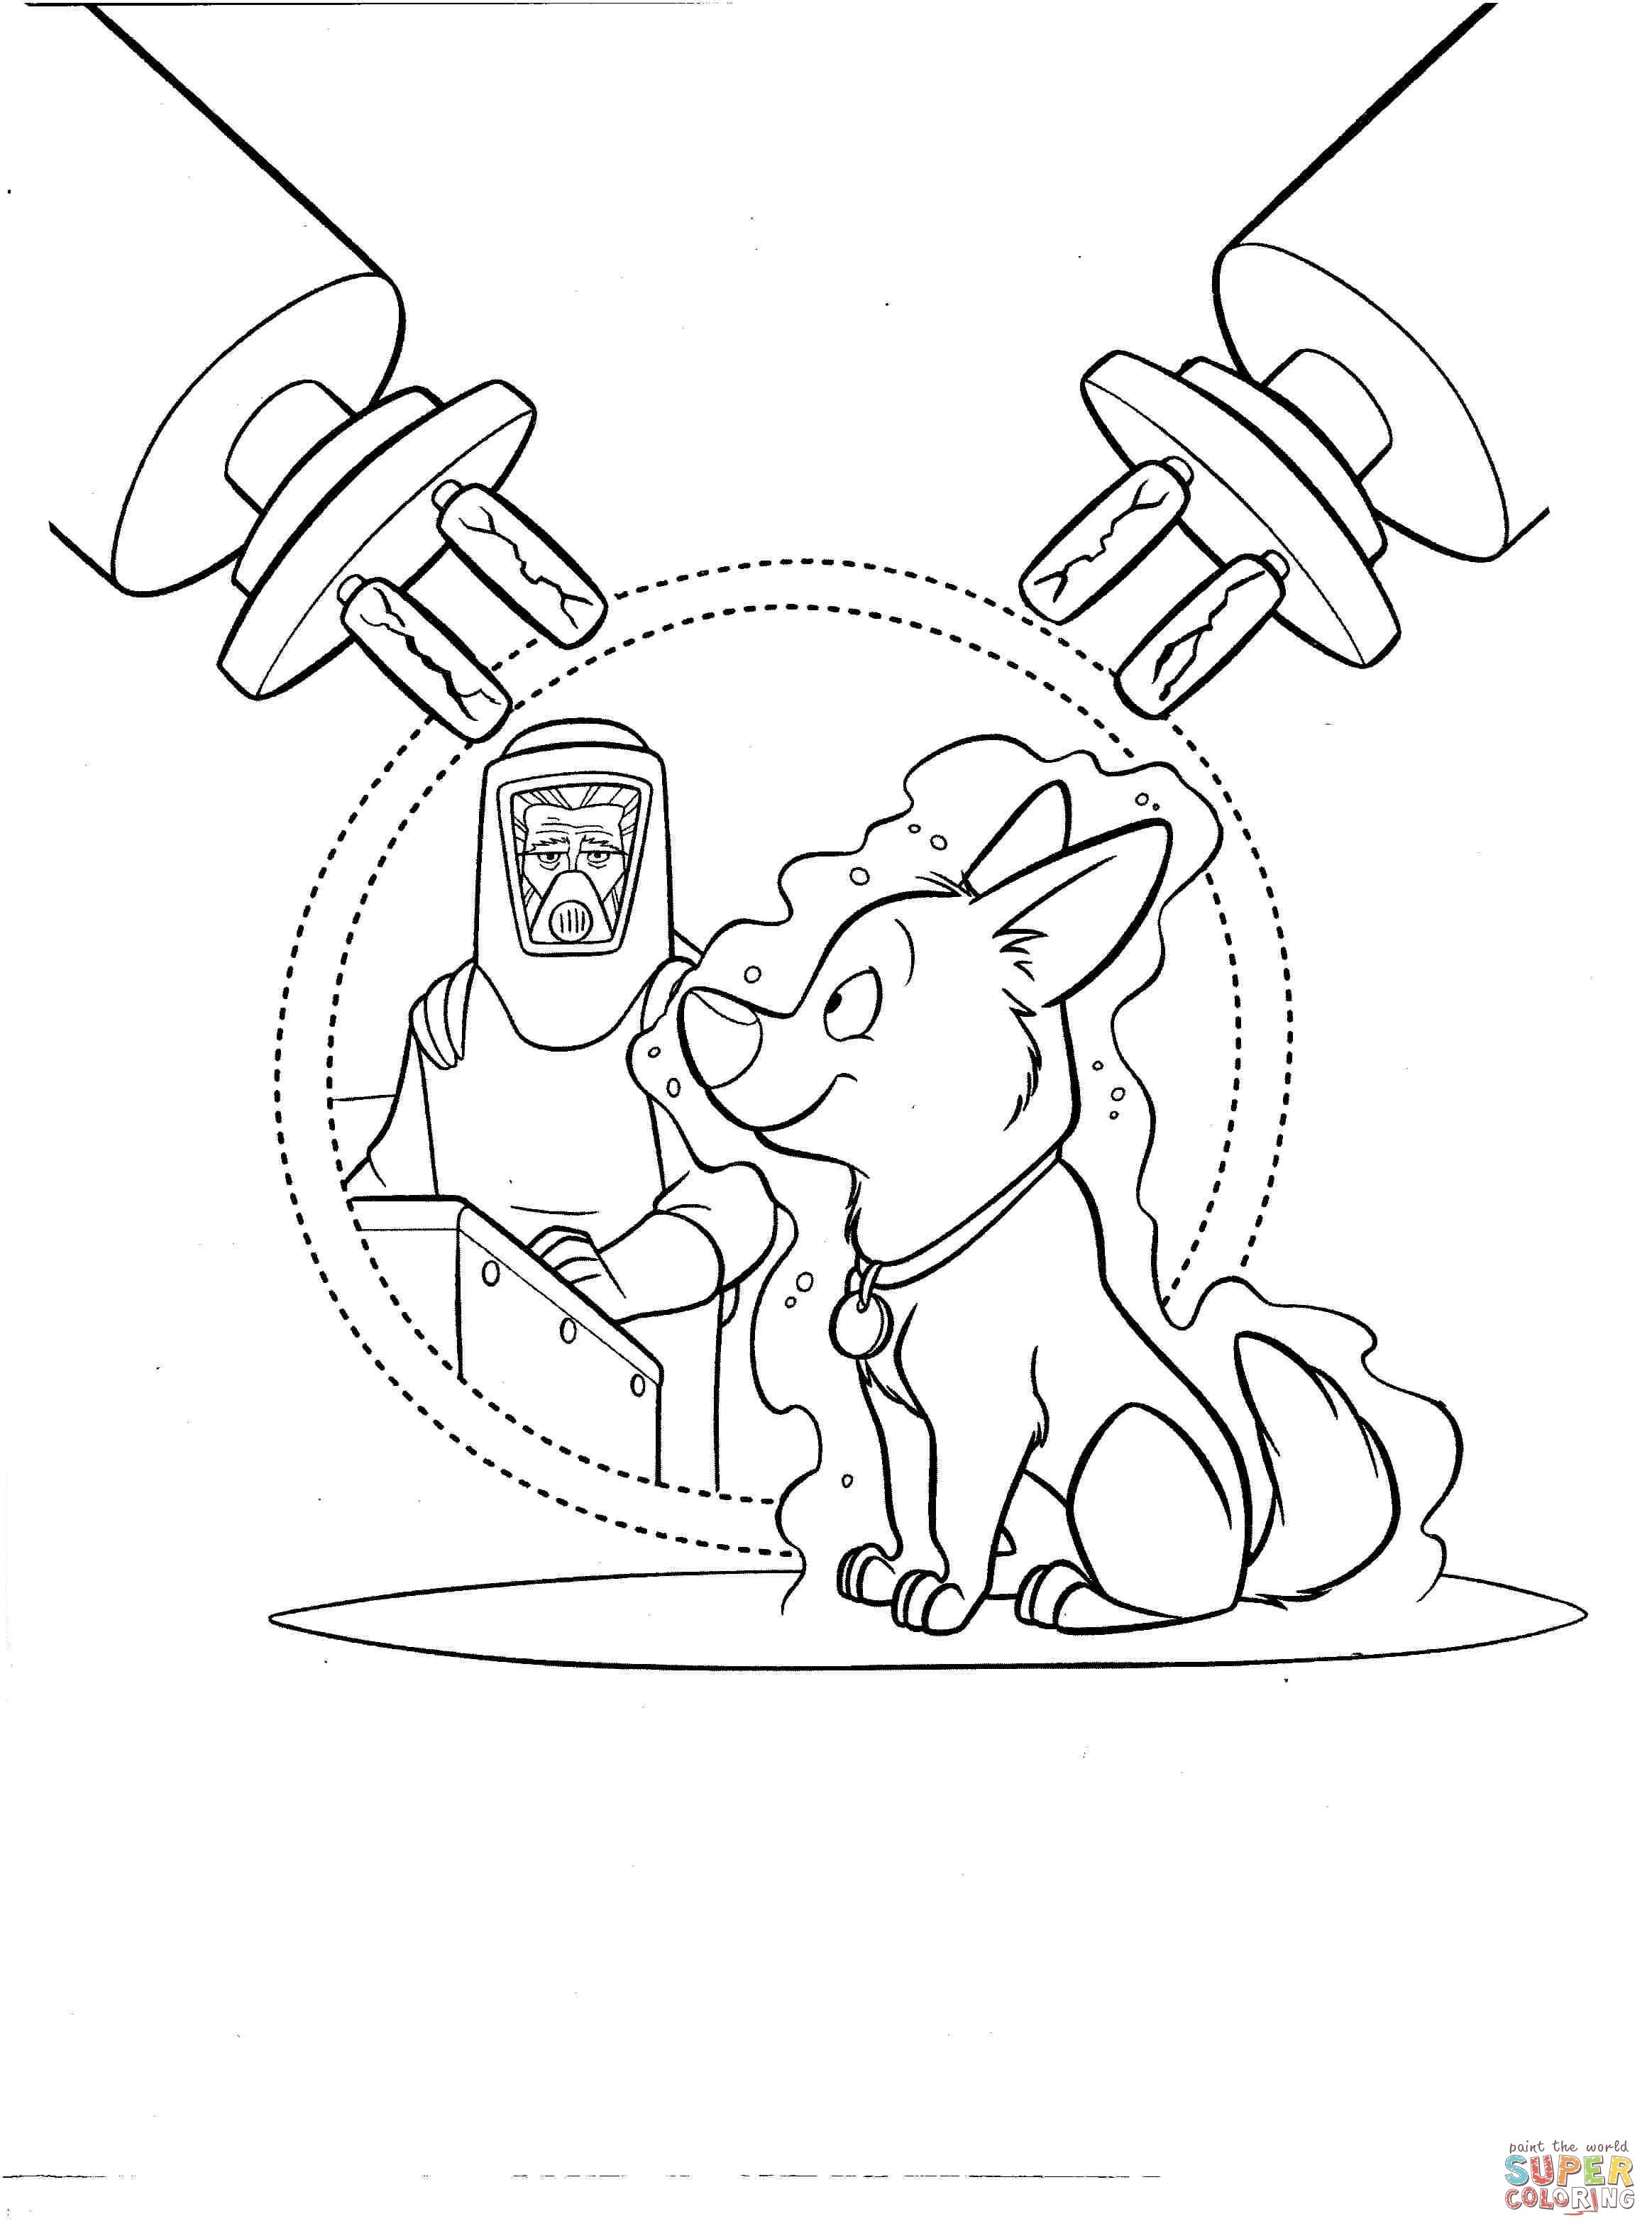 Bolt Coloring Pages Giraffe Coloring Pages Dog Coloring Page Coloring Pages For Kids